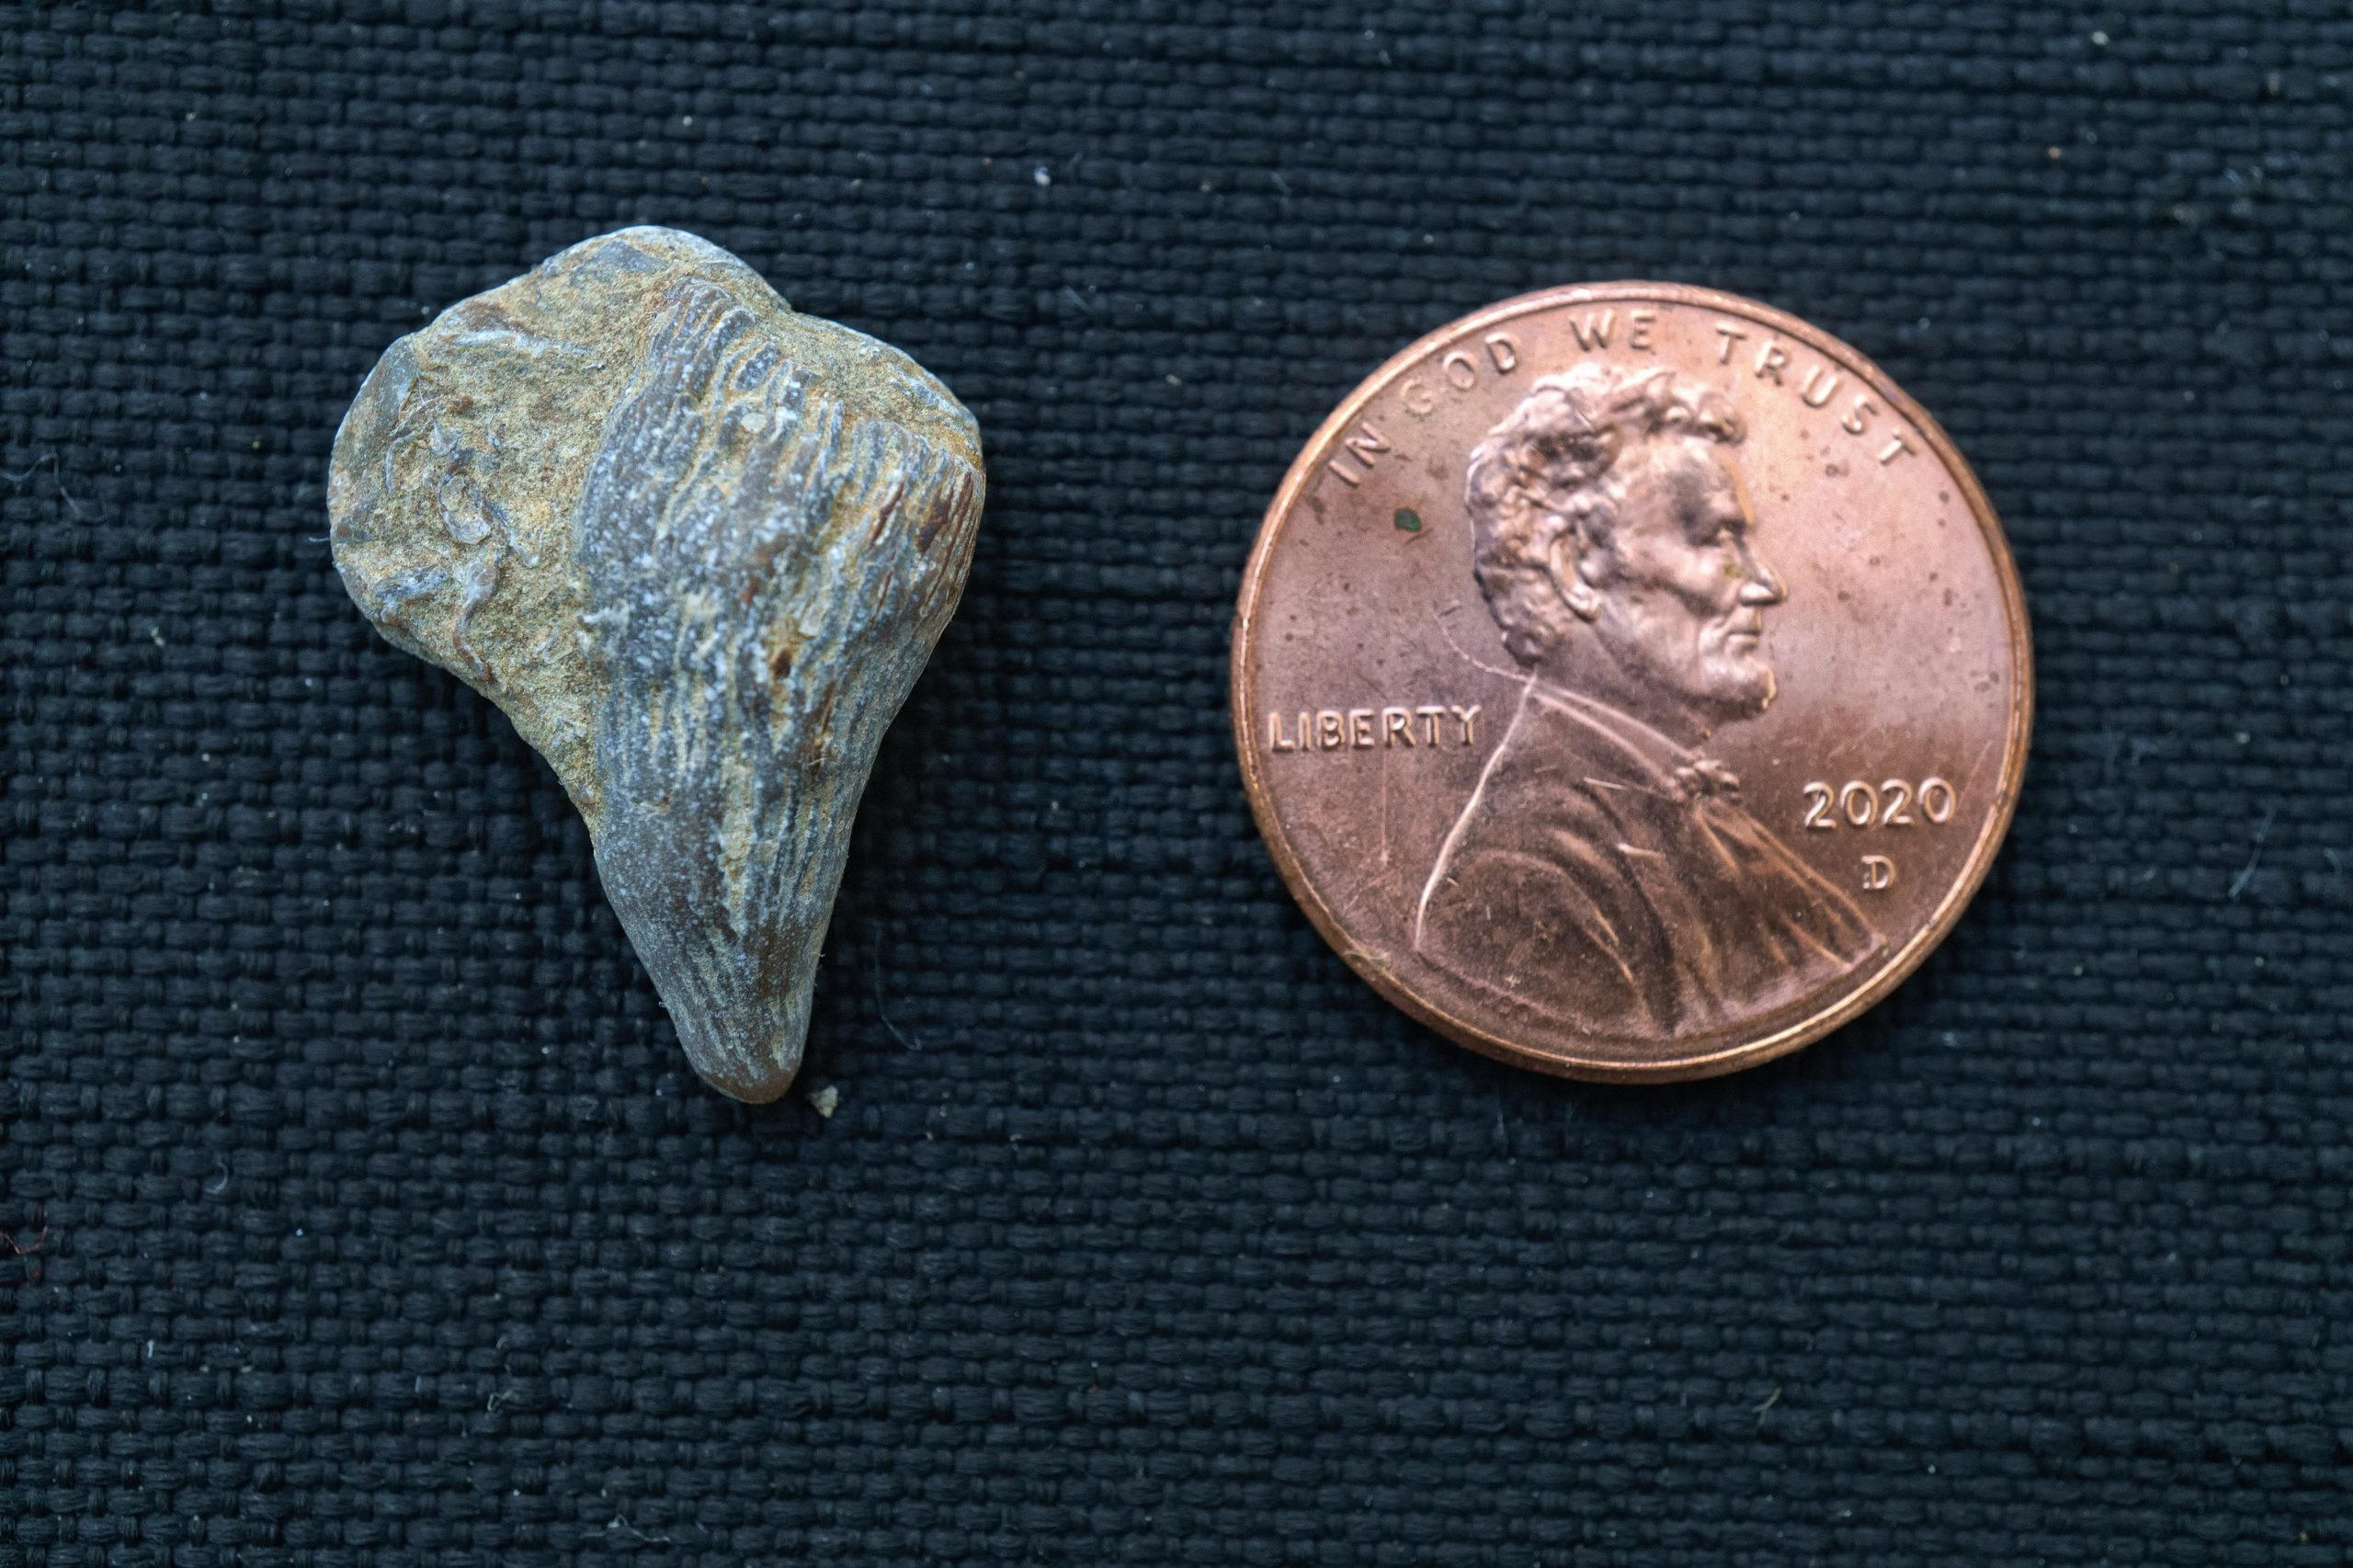 A tooth-shaped rock next to a penny for scale. The rock is about the size of the penny.